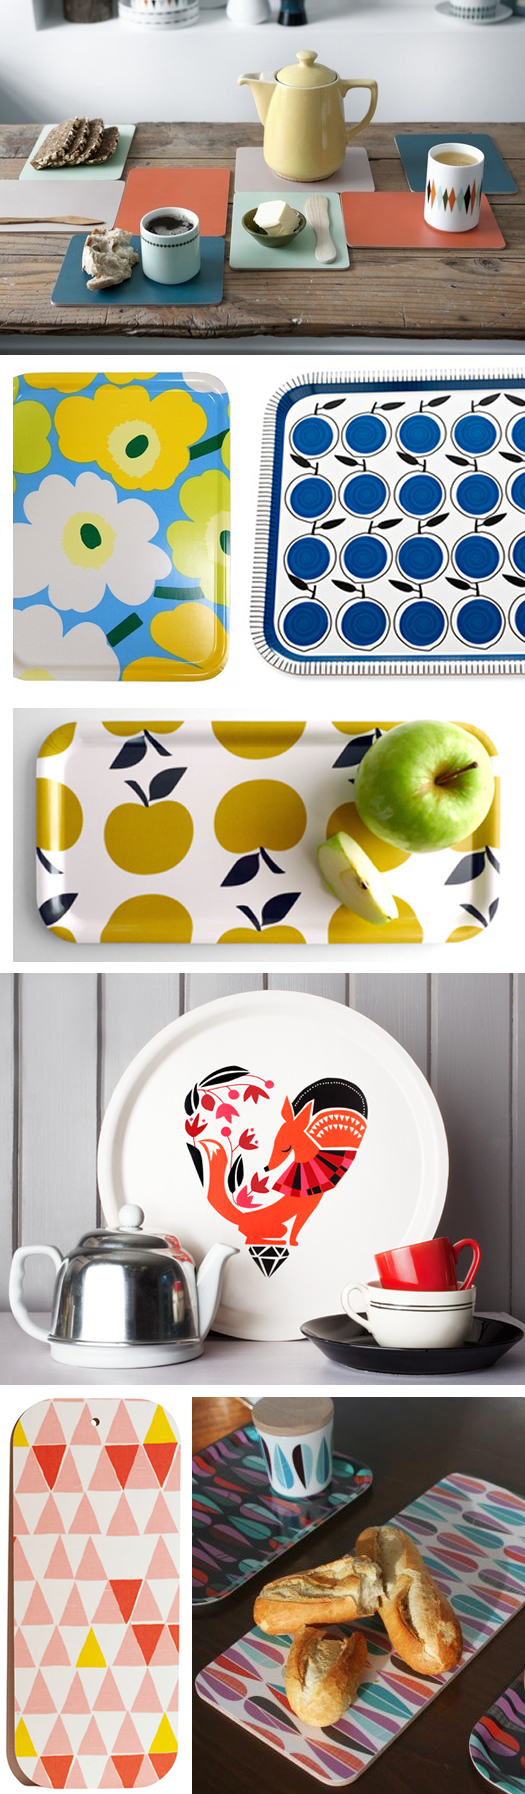 Best of Bread Boards and Trays by Charlotte's Fancy